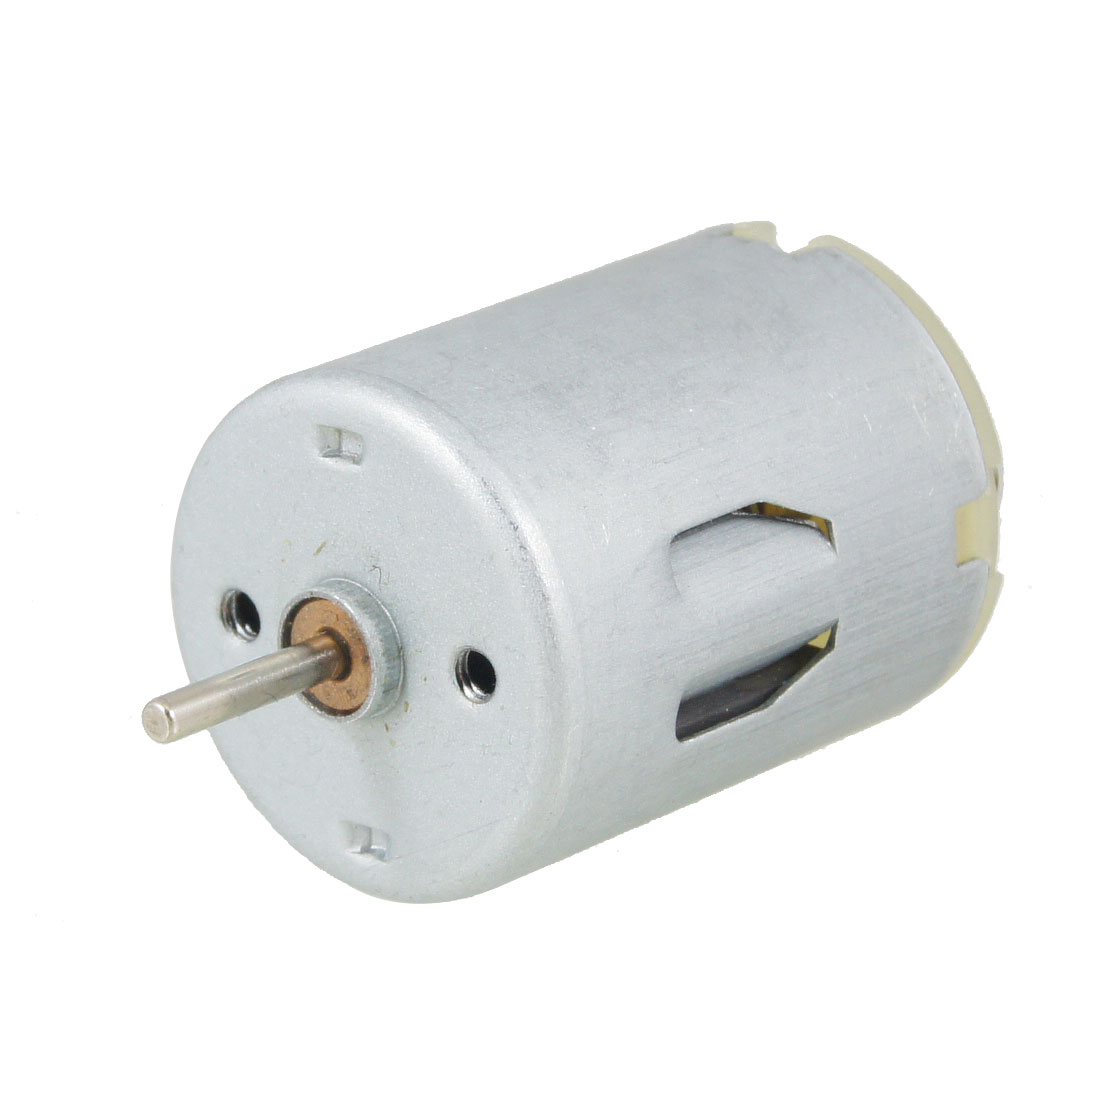 7800RPM-DC-12V-2mm-Shaft-Diameter-2-Pin-Terminals-Electric-Micro-Motor